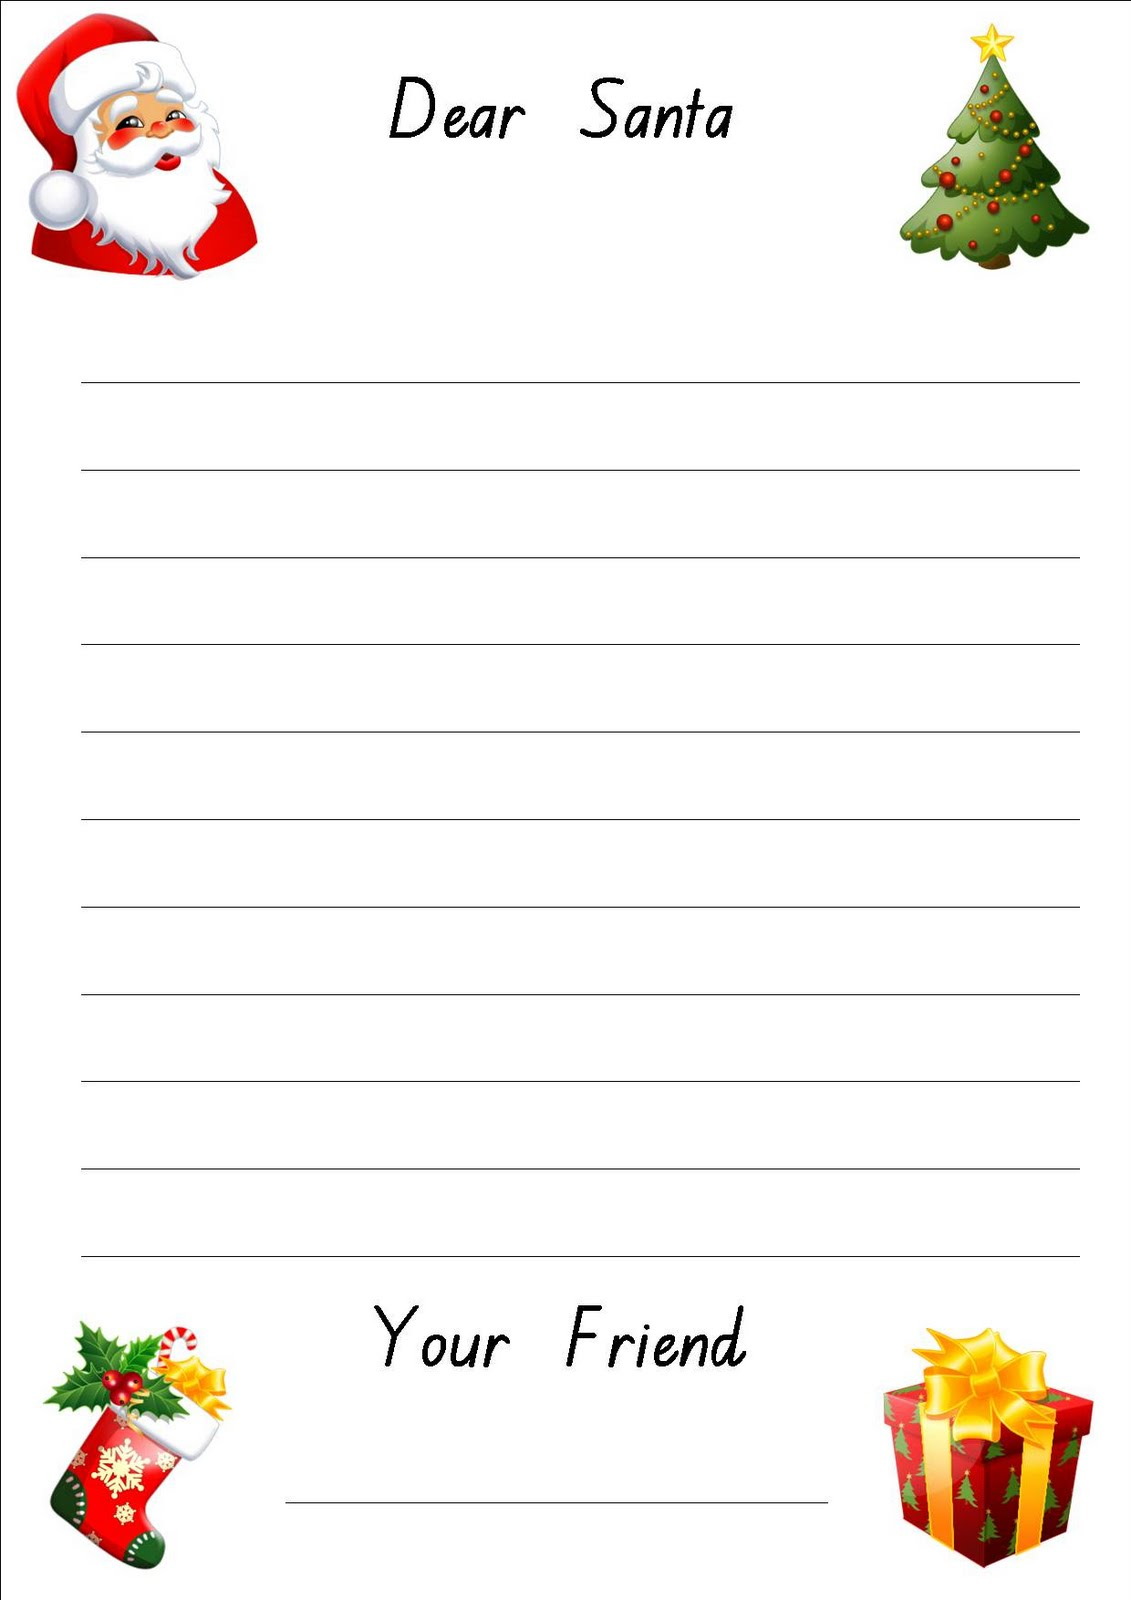 Remarkable image pertaining to letter to santa printable